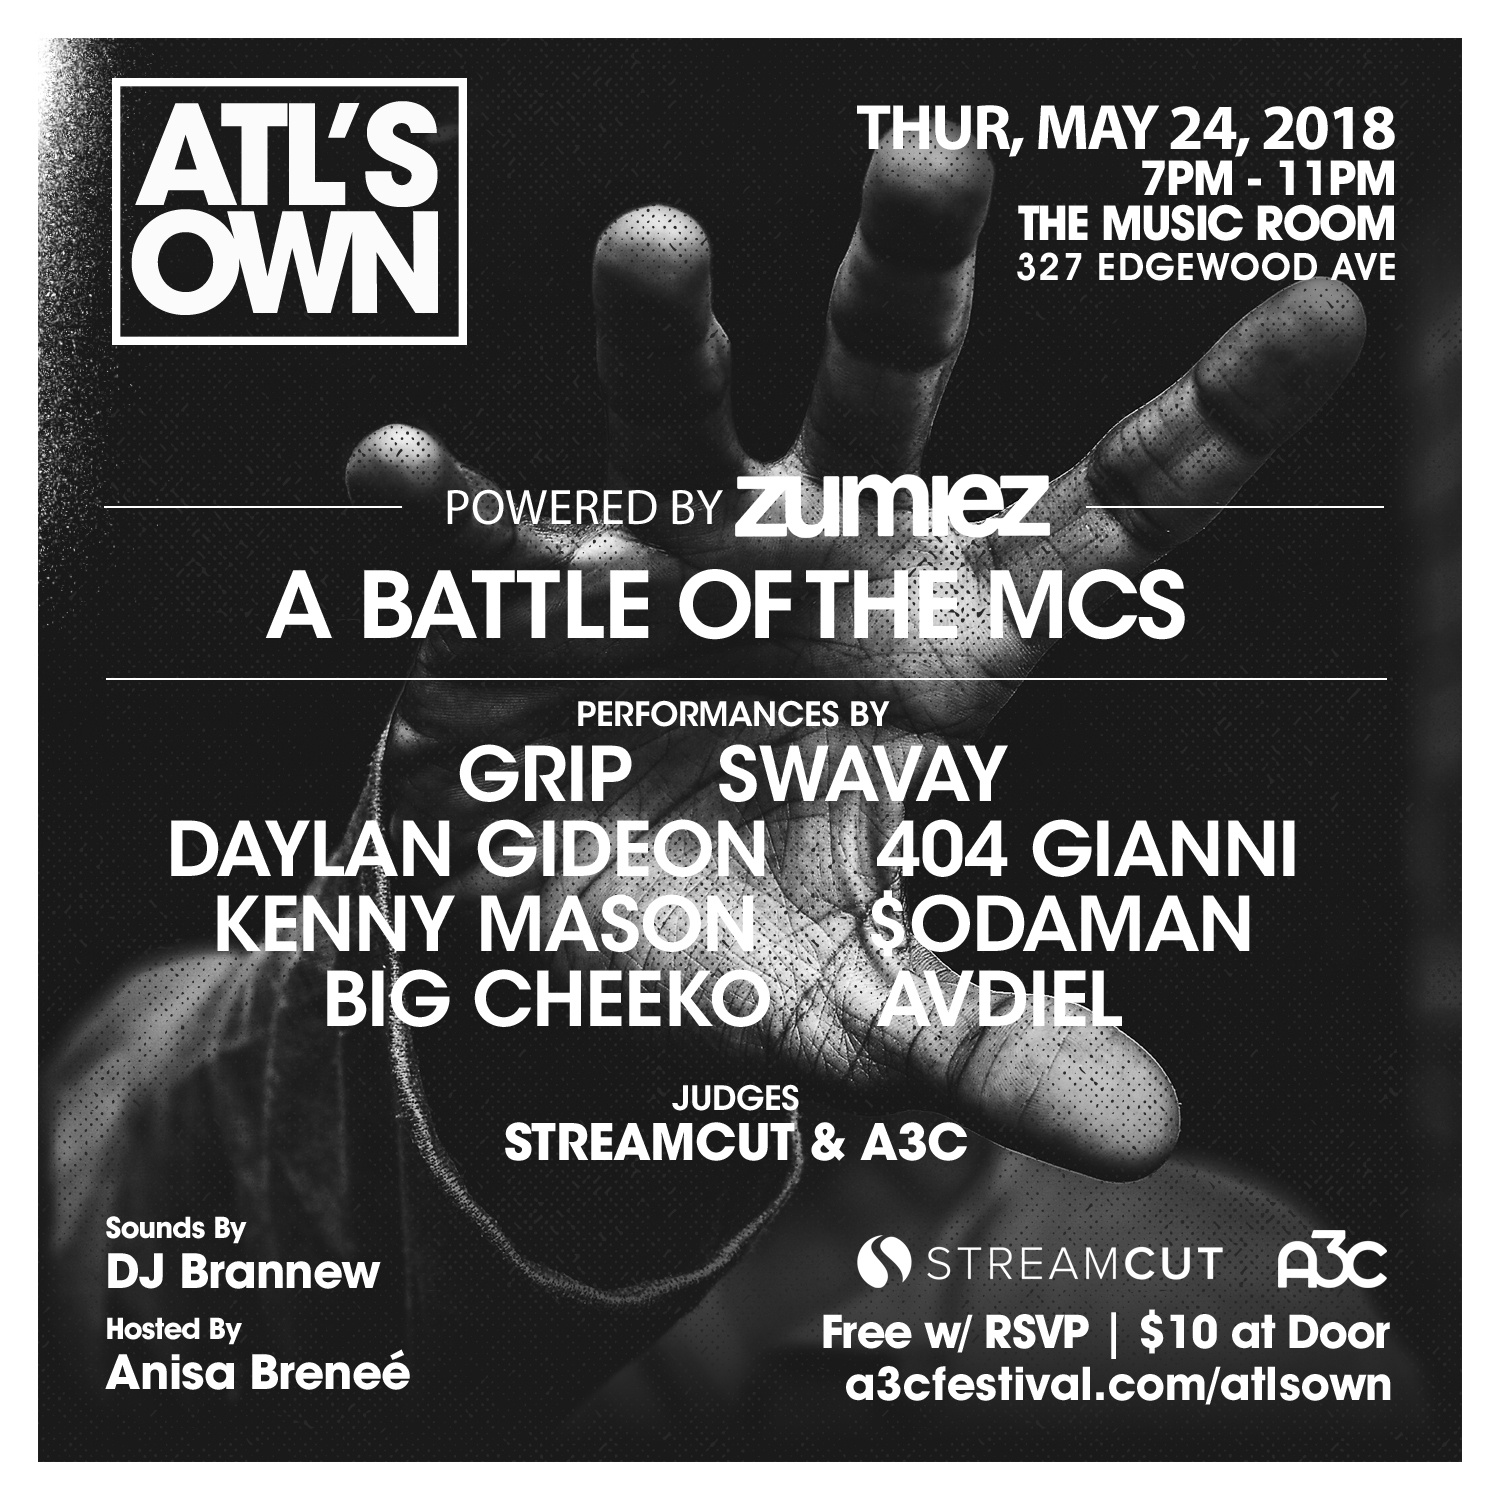 Battle of the MCs - ATLs Own